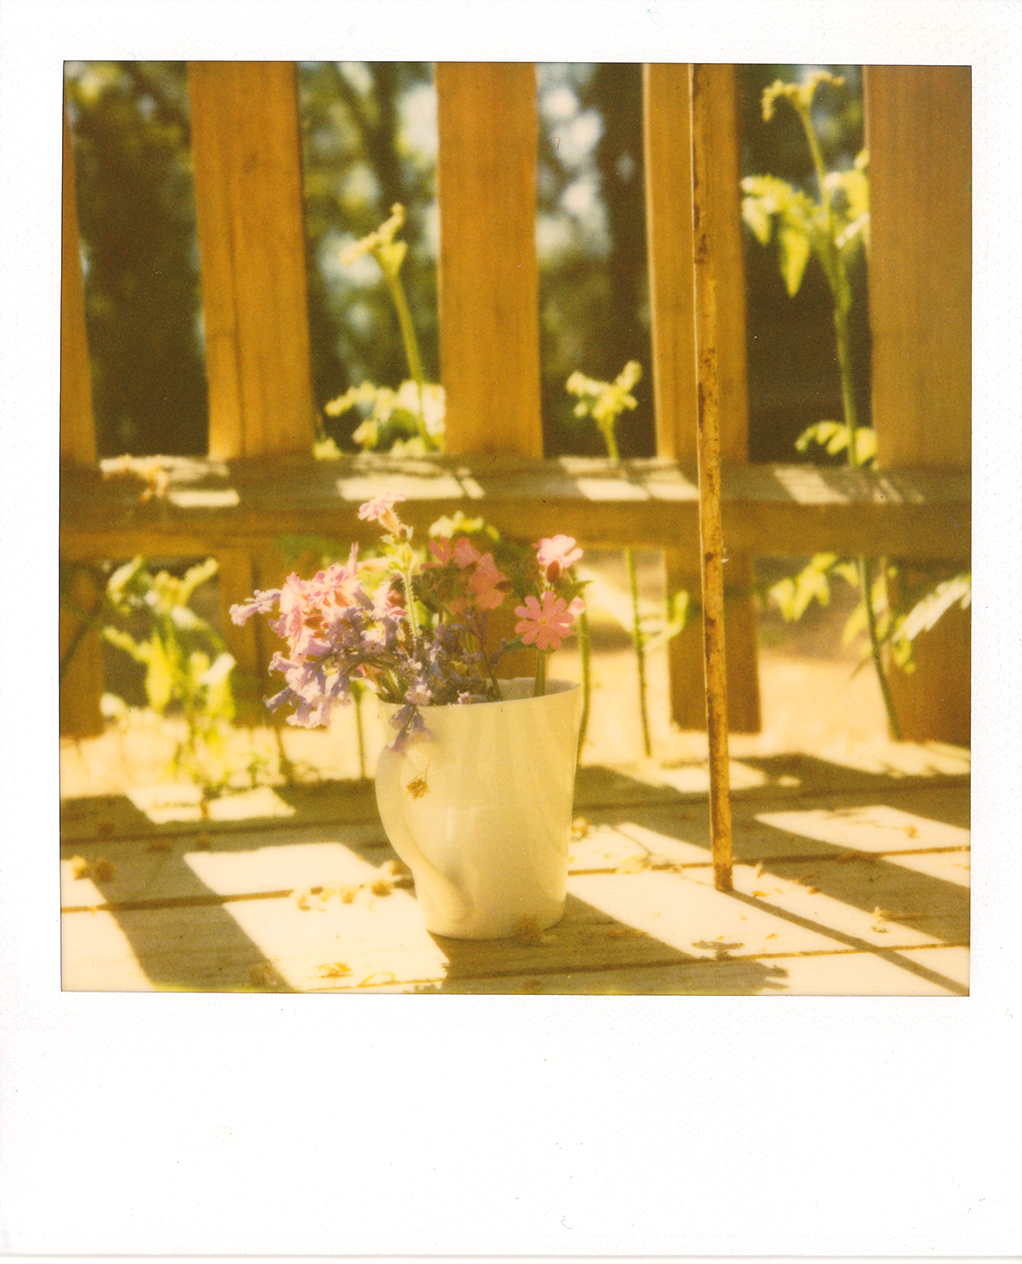 impossible blend film, warm and soft.